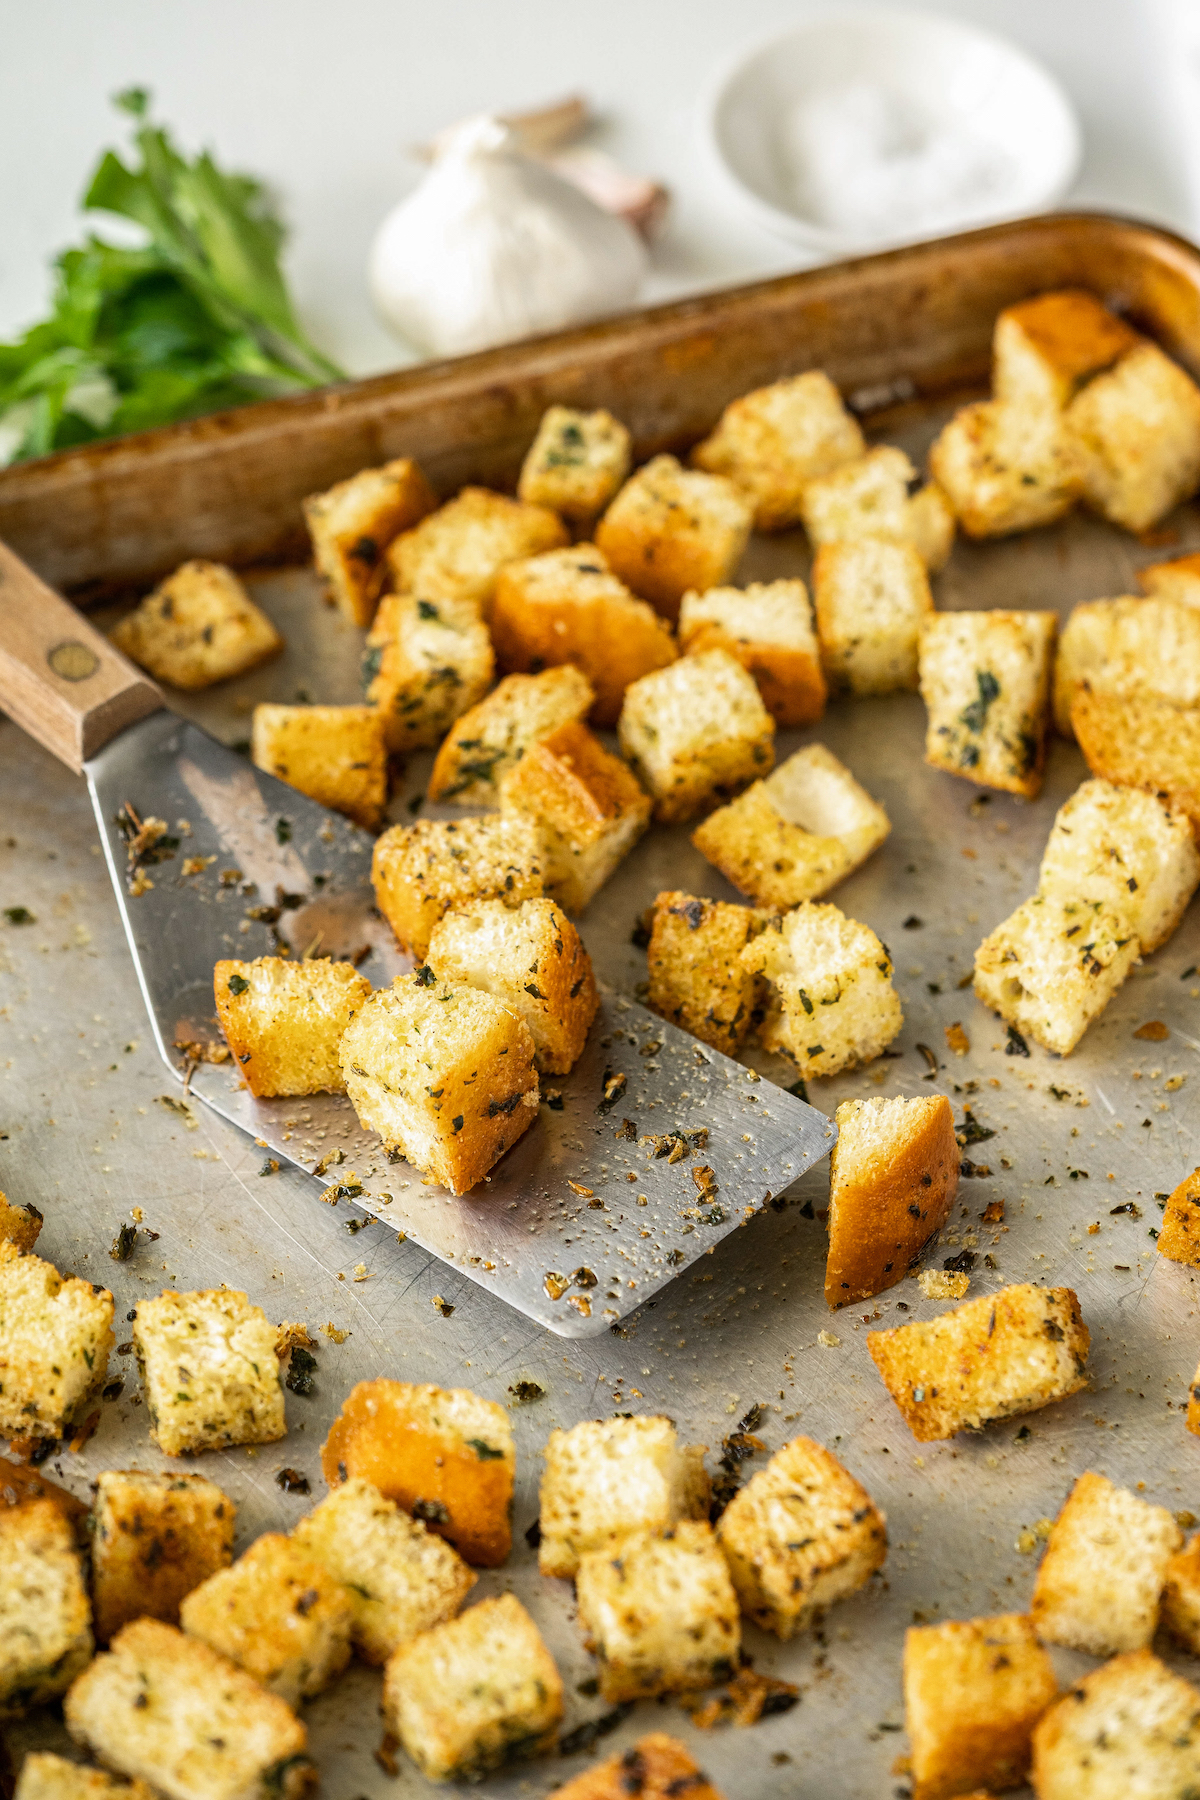 Baked croutons on a baking sheet.